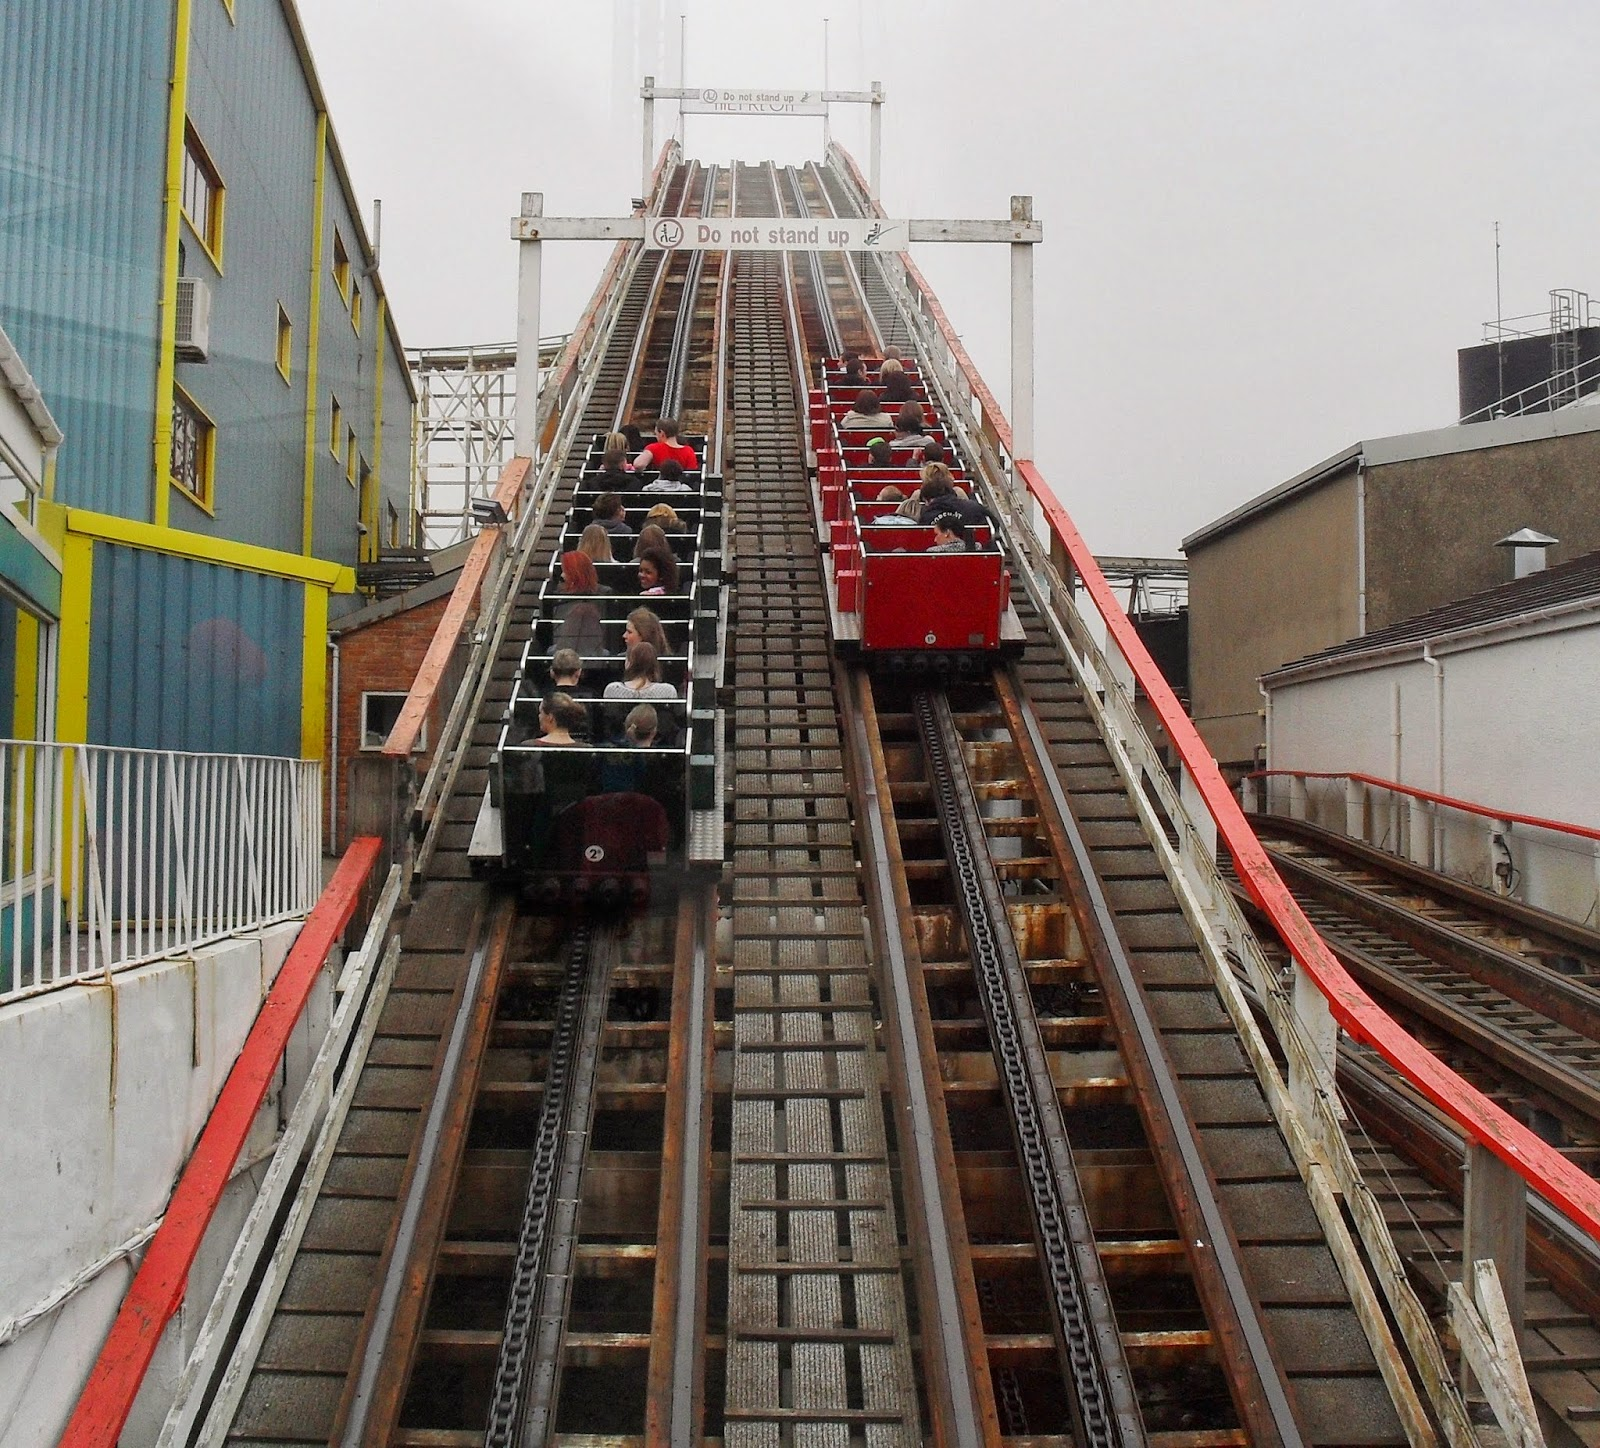 Rollercoaster at Blackpool Pleasure Beach